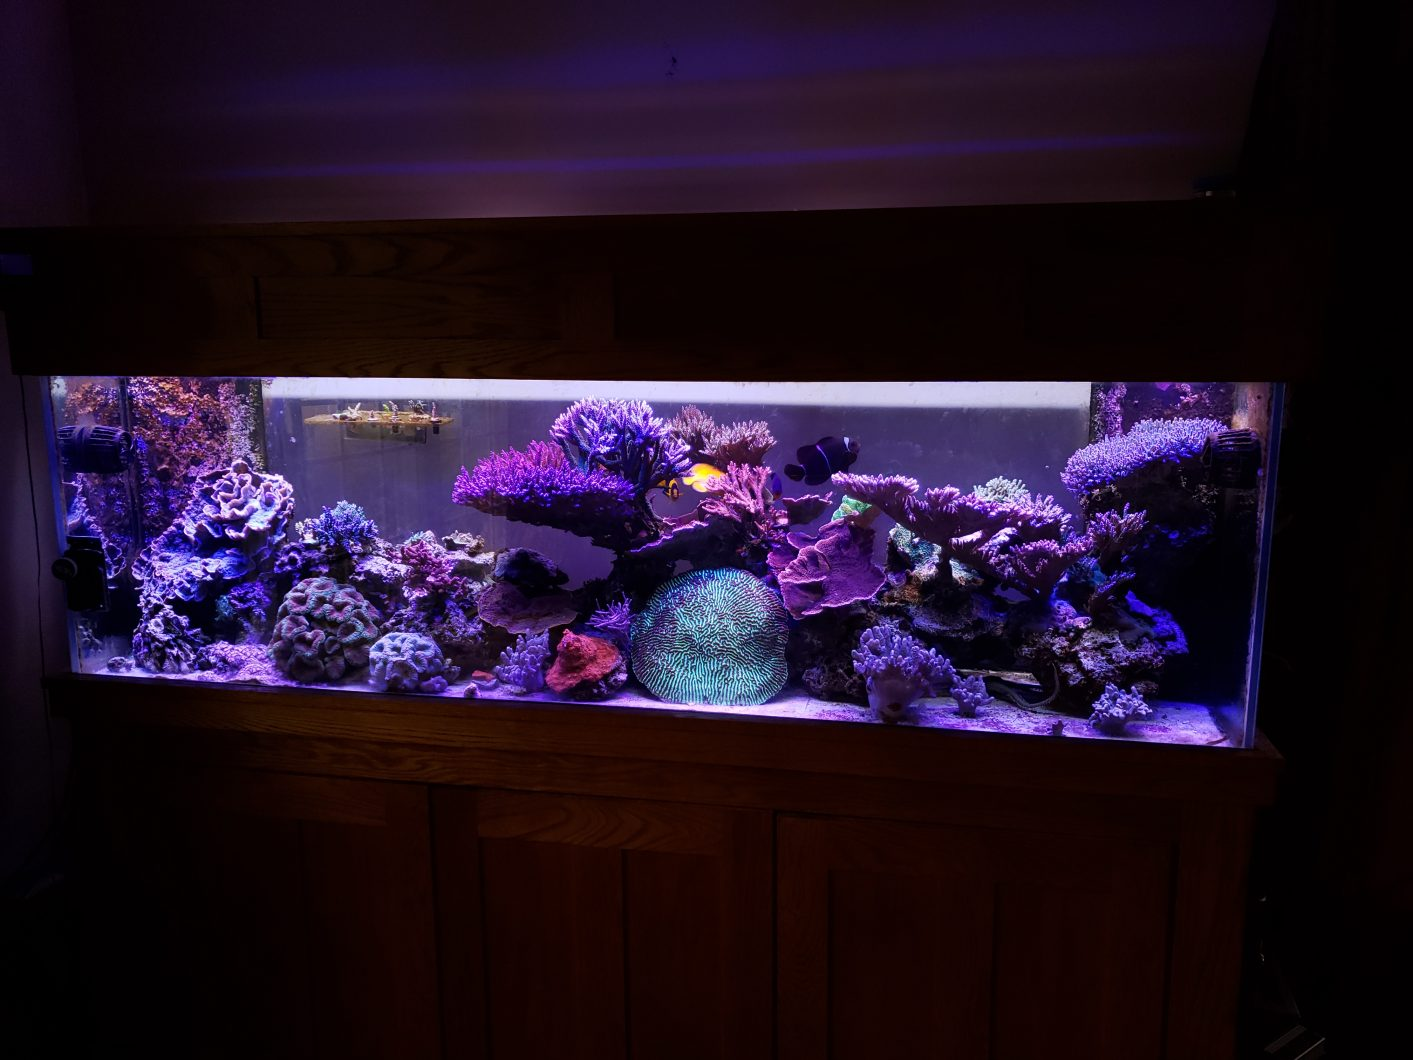 orphek-or90-bar-led-over-6-foot-wide-135G-sps-dominated-reef